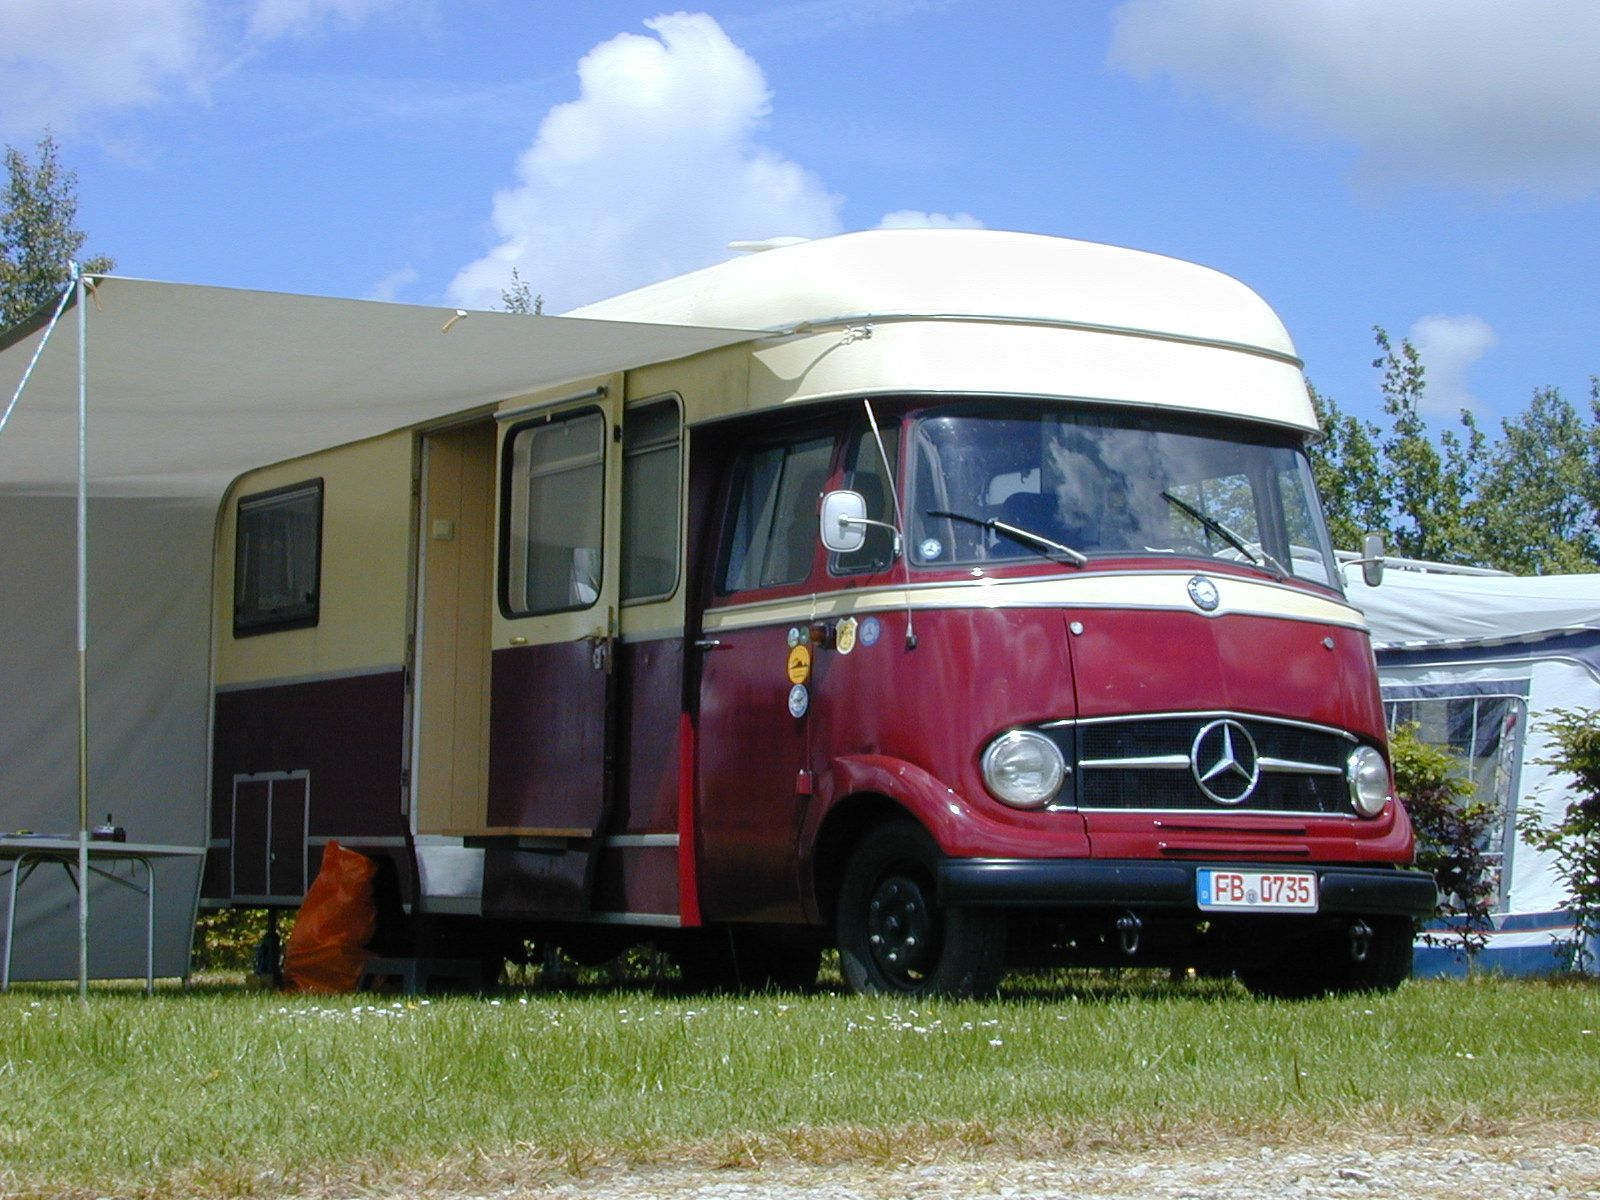 notin mercedes unusual rvs caravans motorhomes pinterest mercedes benz mercedes camper. Black Bedroom Furniture Sets. Home Design Ideas